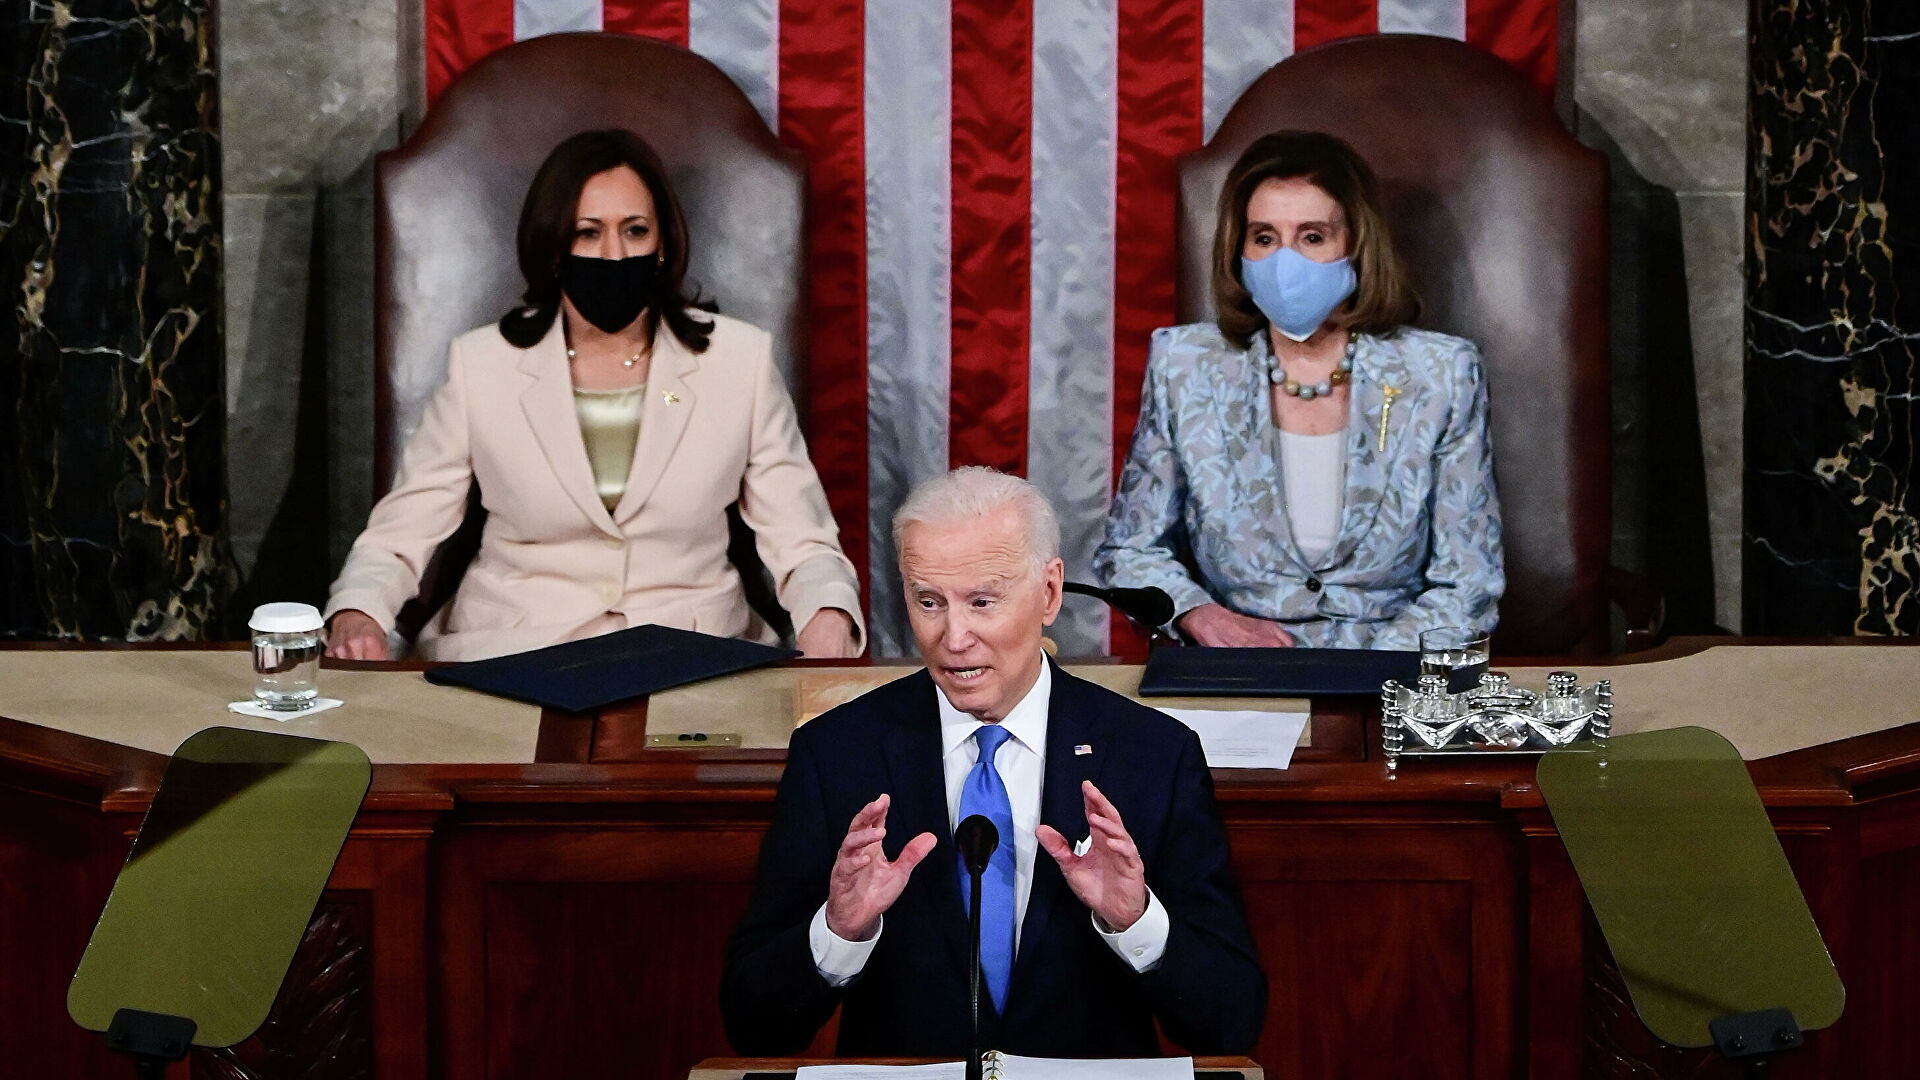 More and more left-wing populism in Biden's speeches